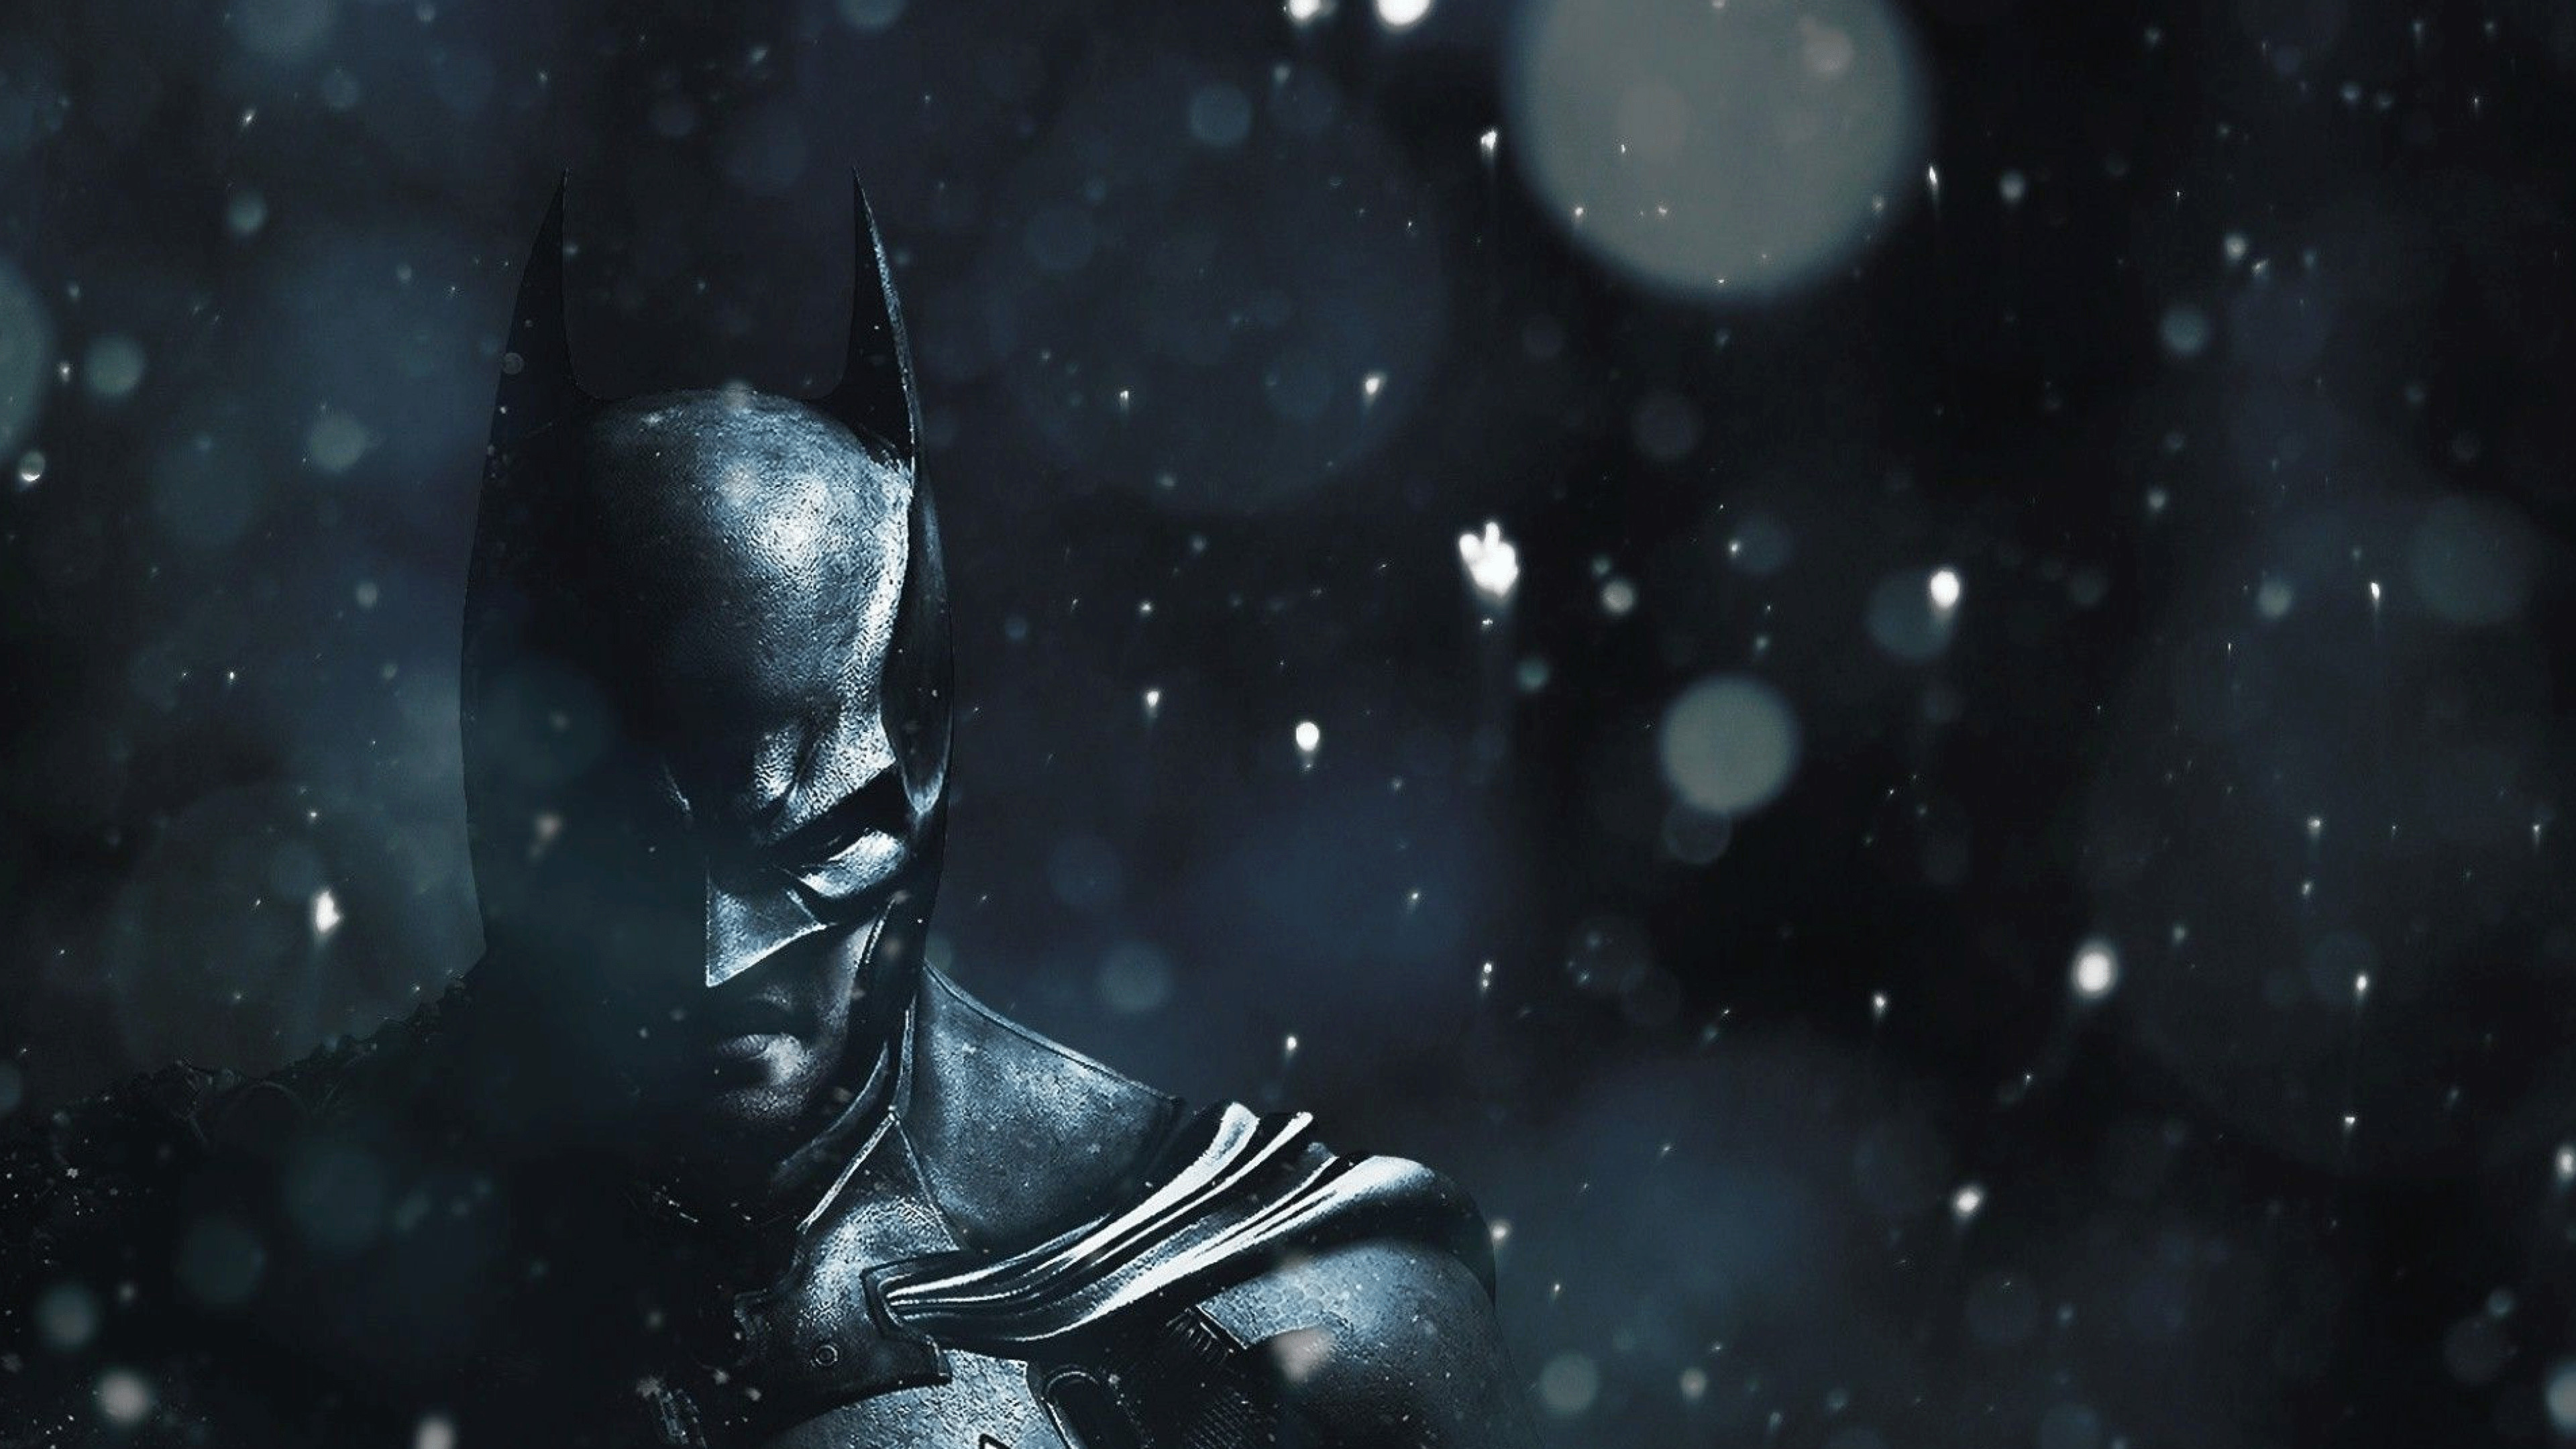 Collection of Batman Pc Wallpapers on HDWallpapers Batman Wallpapers  Wallpapers)